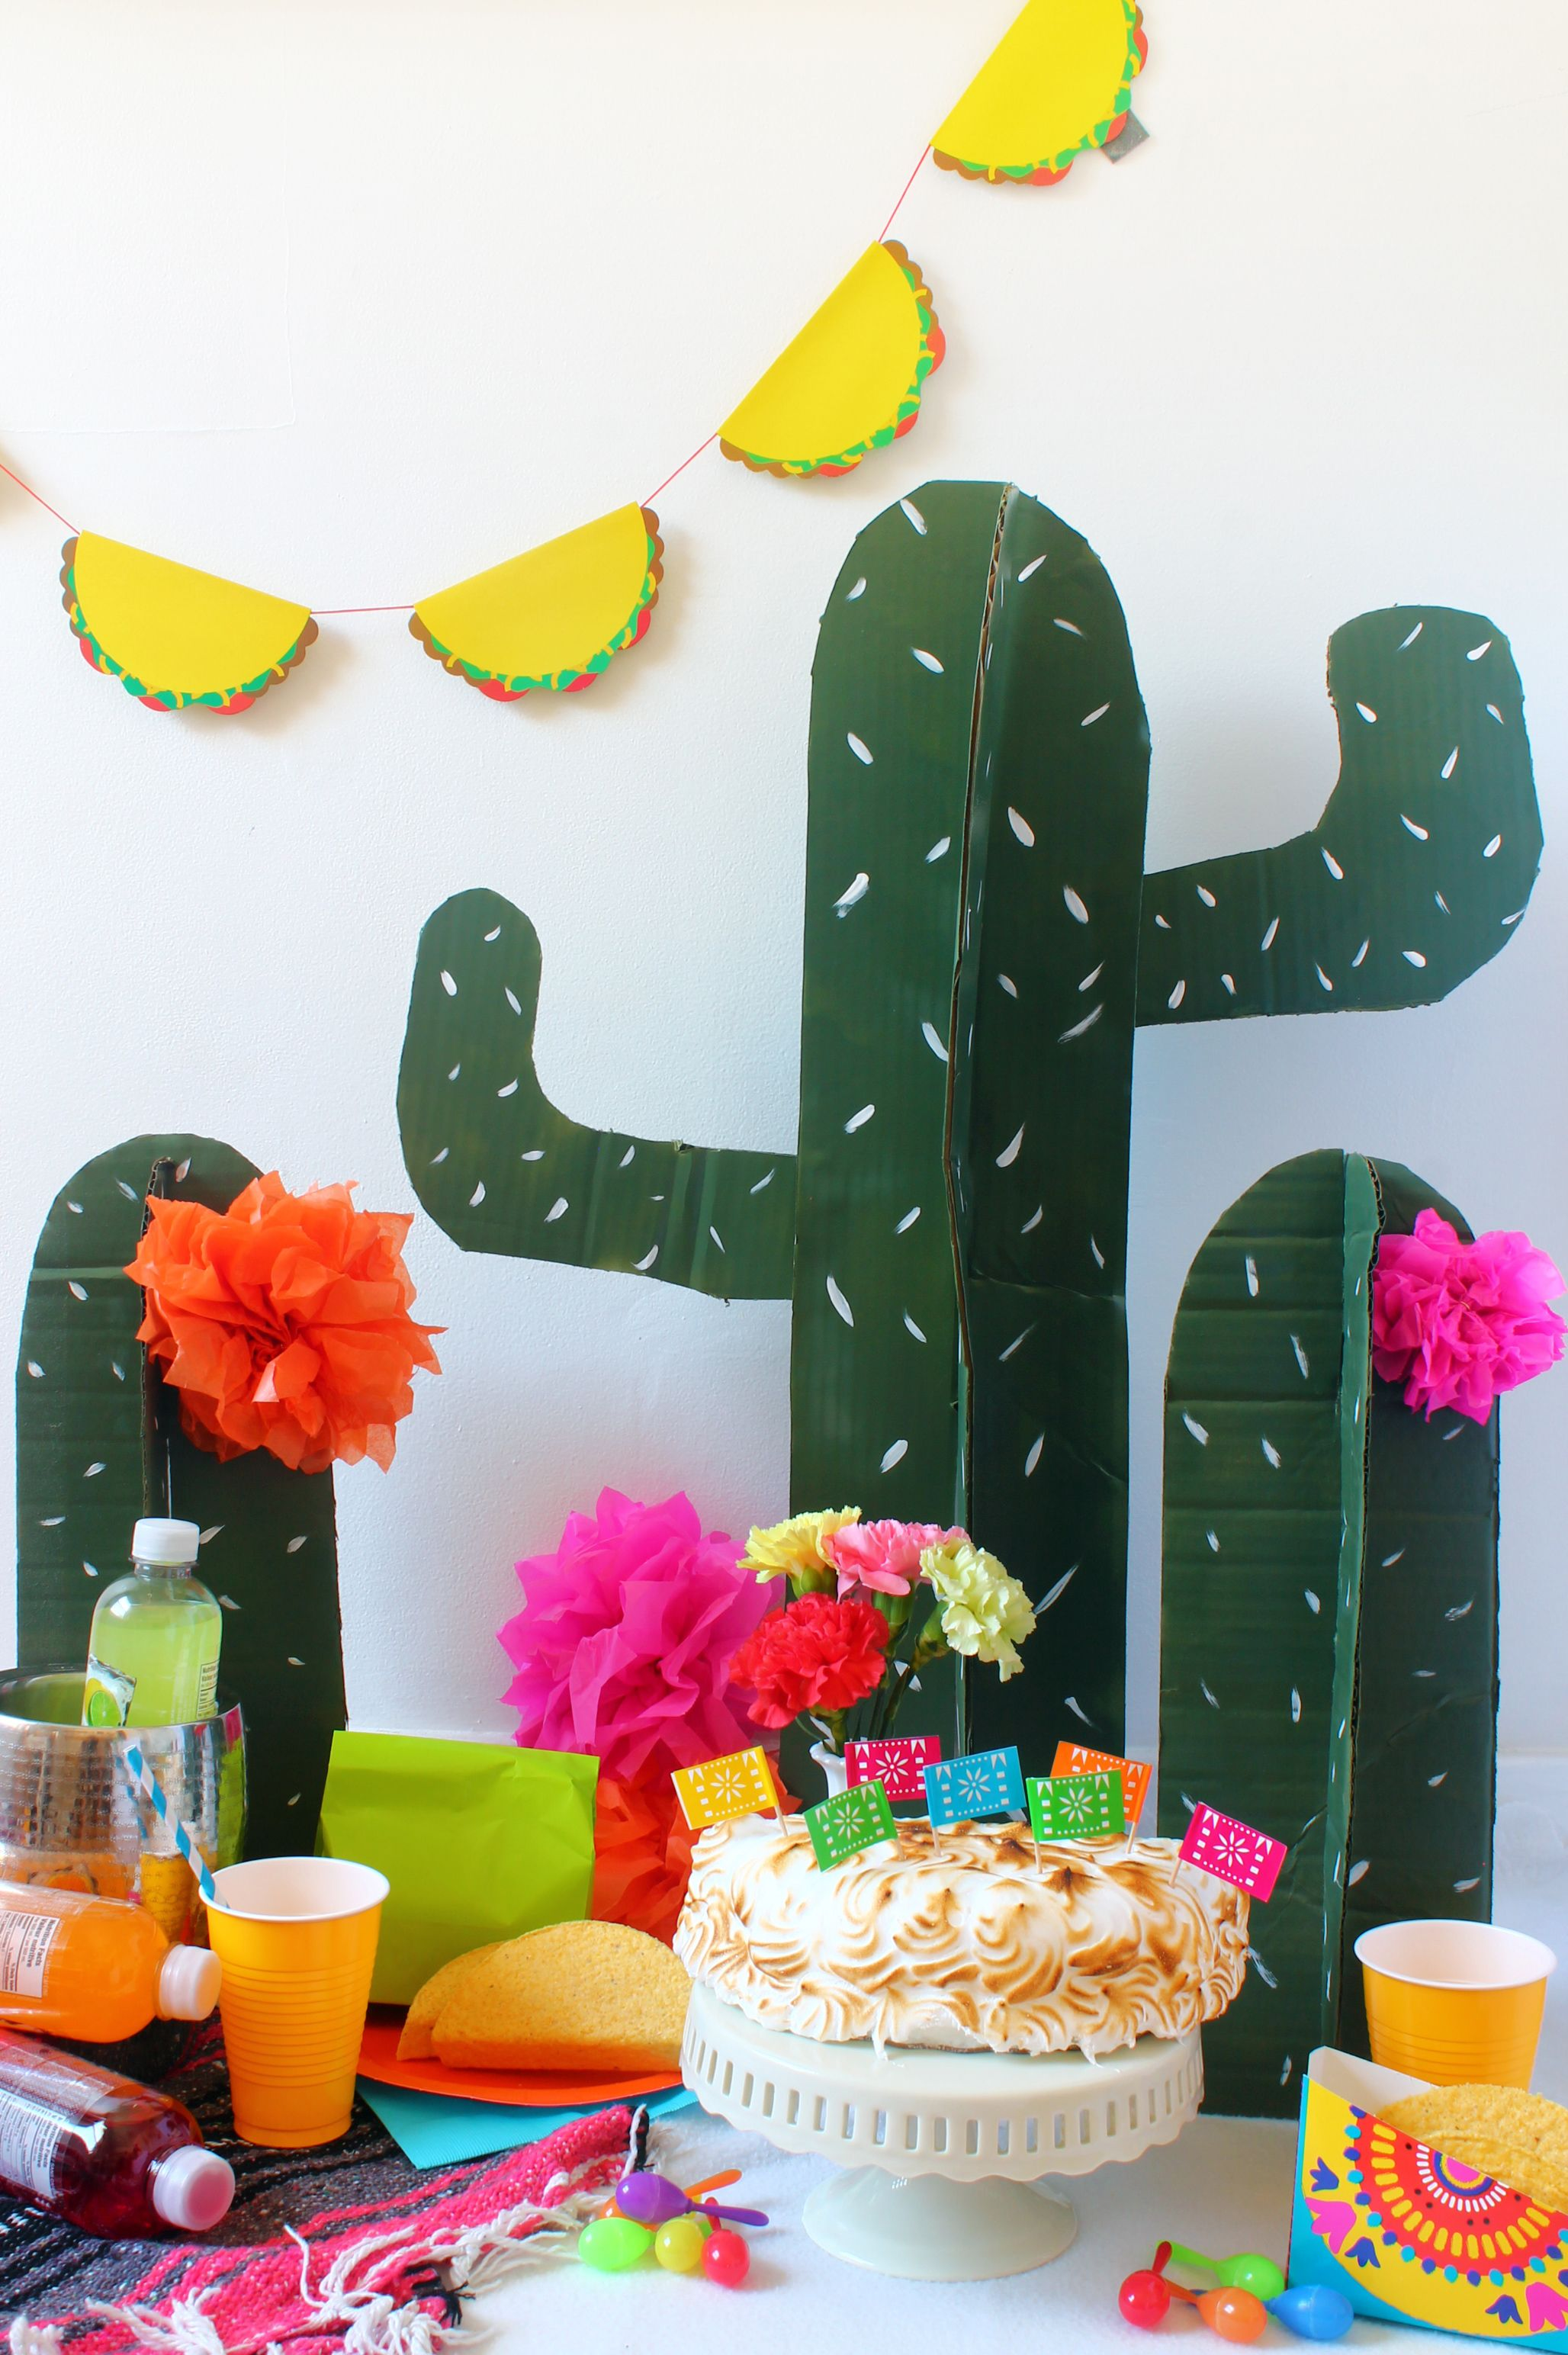 Diy party pinterest decoracion fiesta mexicana for Diy decoracion cumpleanos